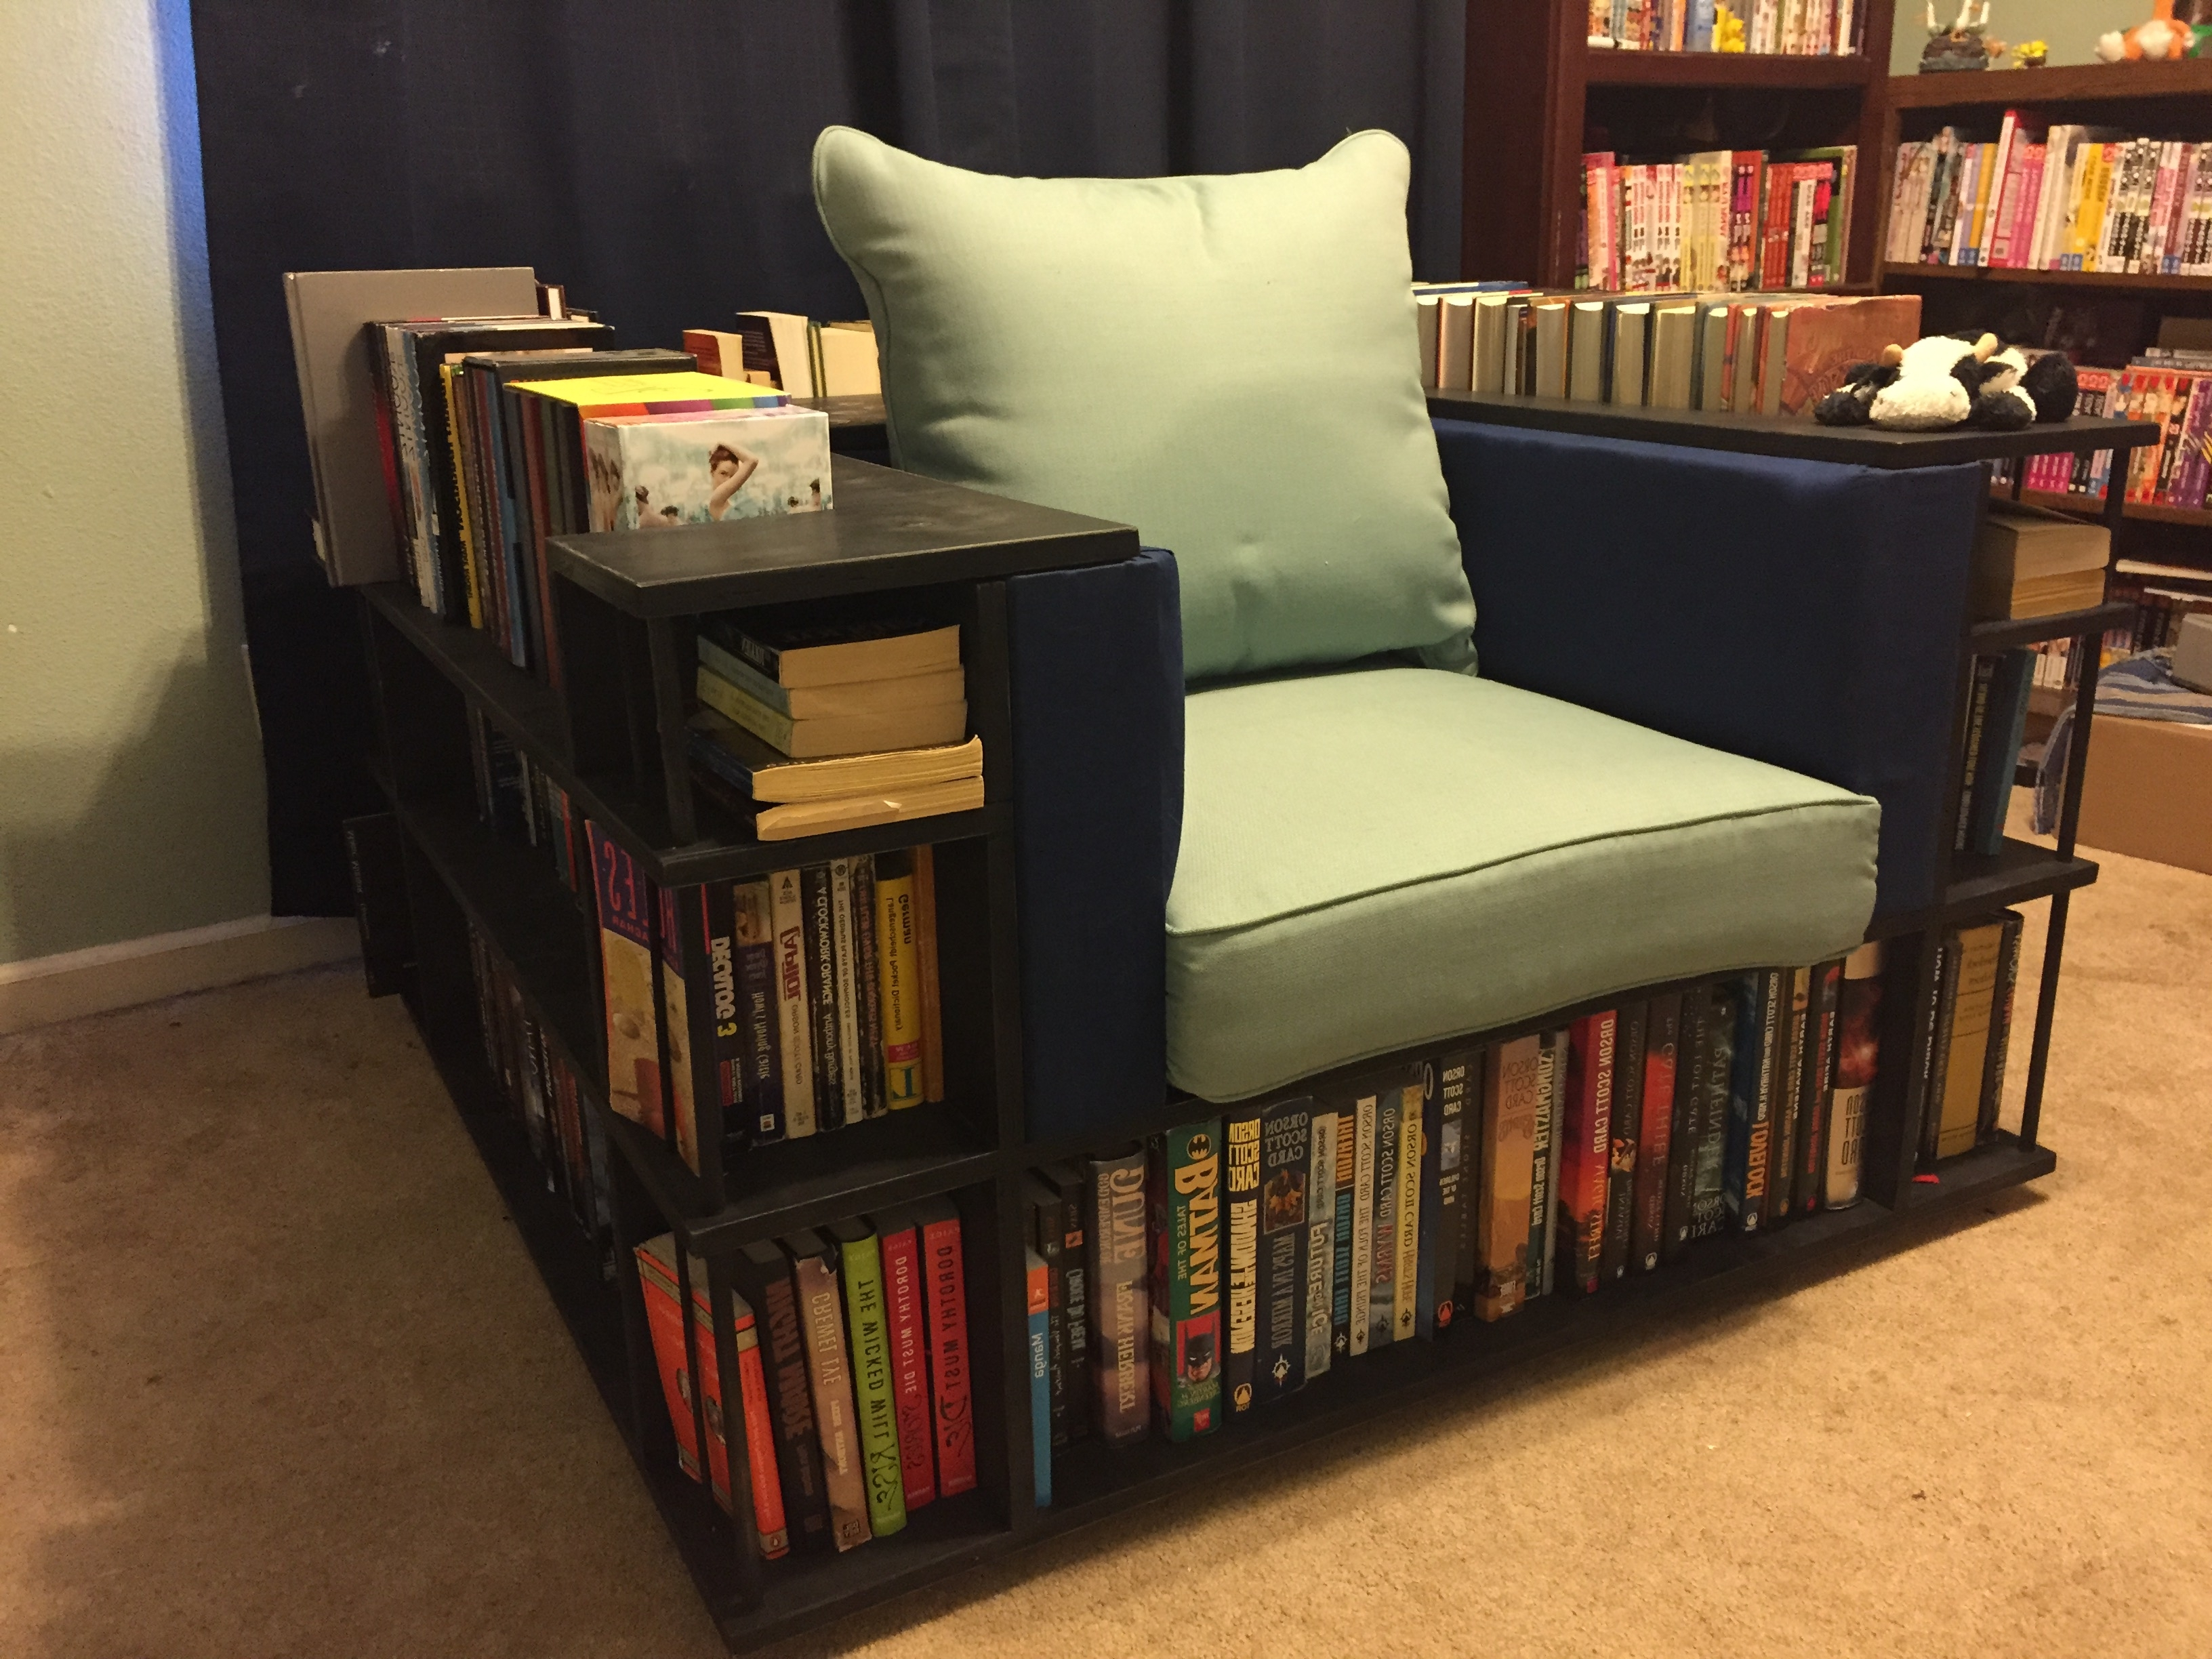 Preferred Cube Bookcases Youll Love Wayfair Ca Benito Unit Bookcase ~ Idolza Within Chair Bookcases (View 12 of 15)